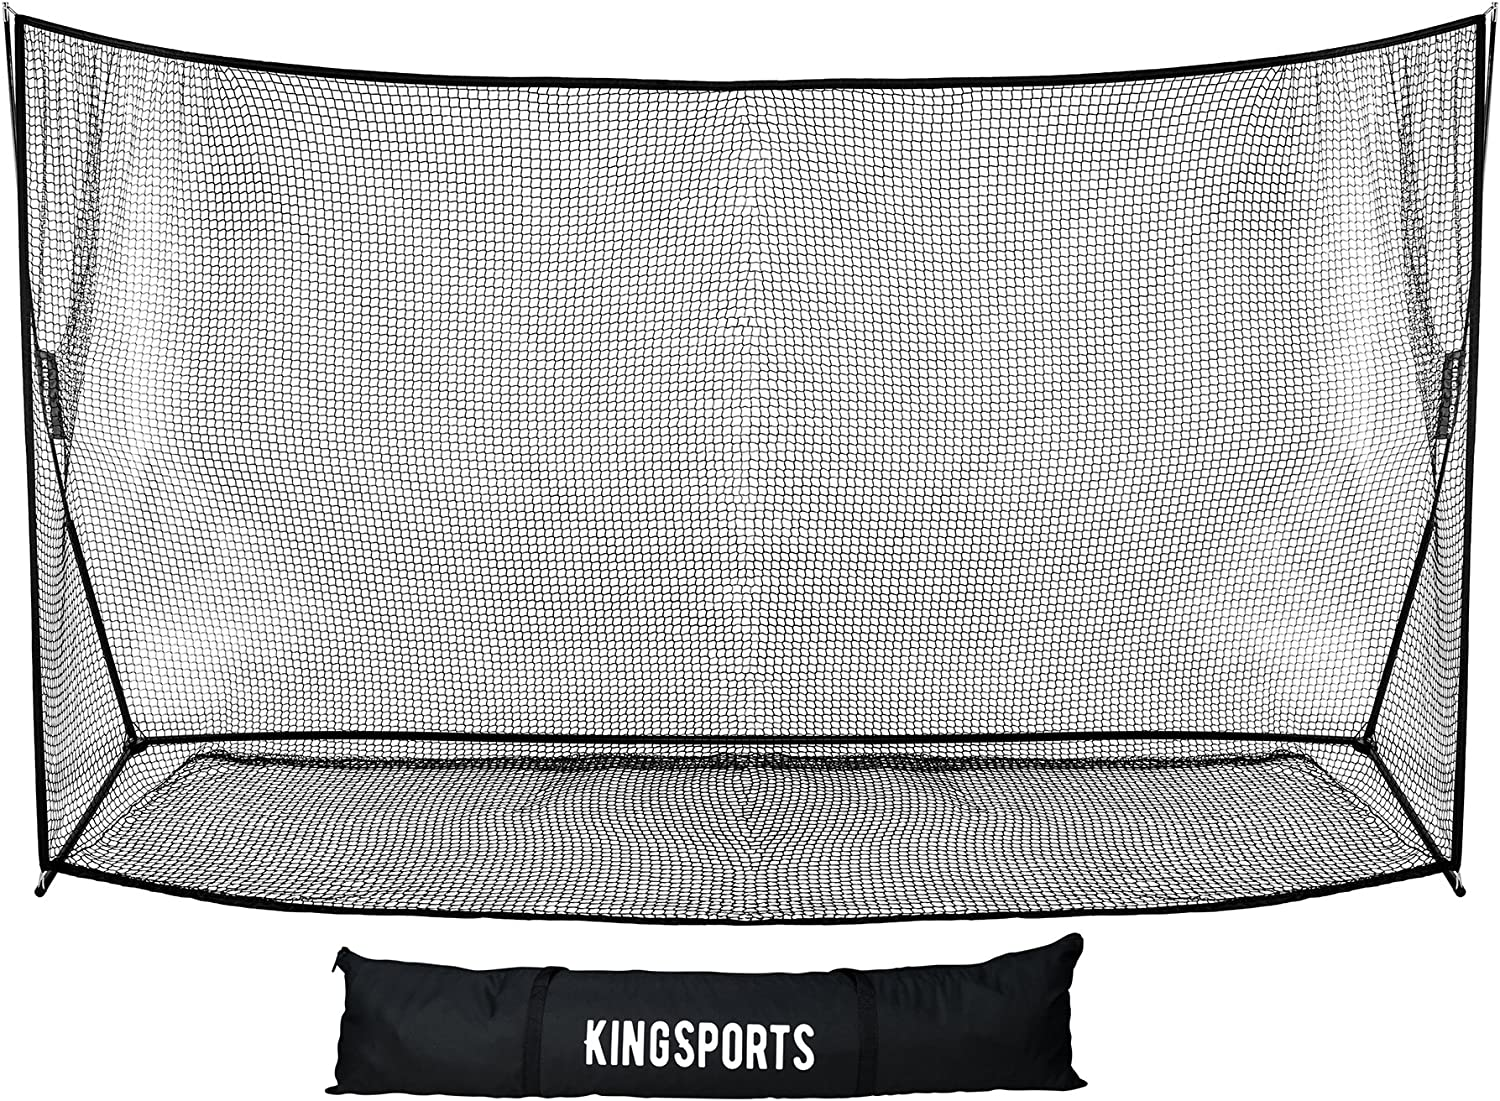 KingSports Large Golf Practice Training Net – Portable Golf Net for Indoor and Outdoor Use – 10 x 7 ft